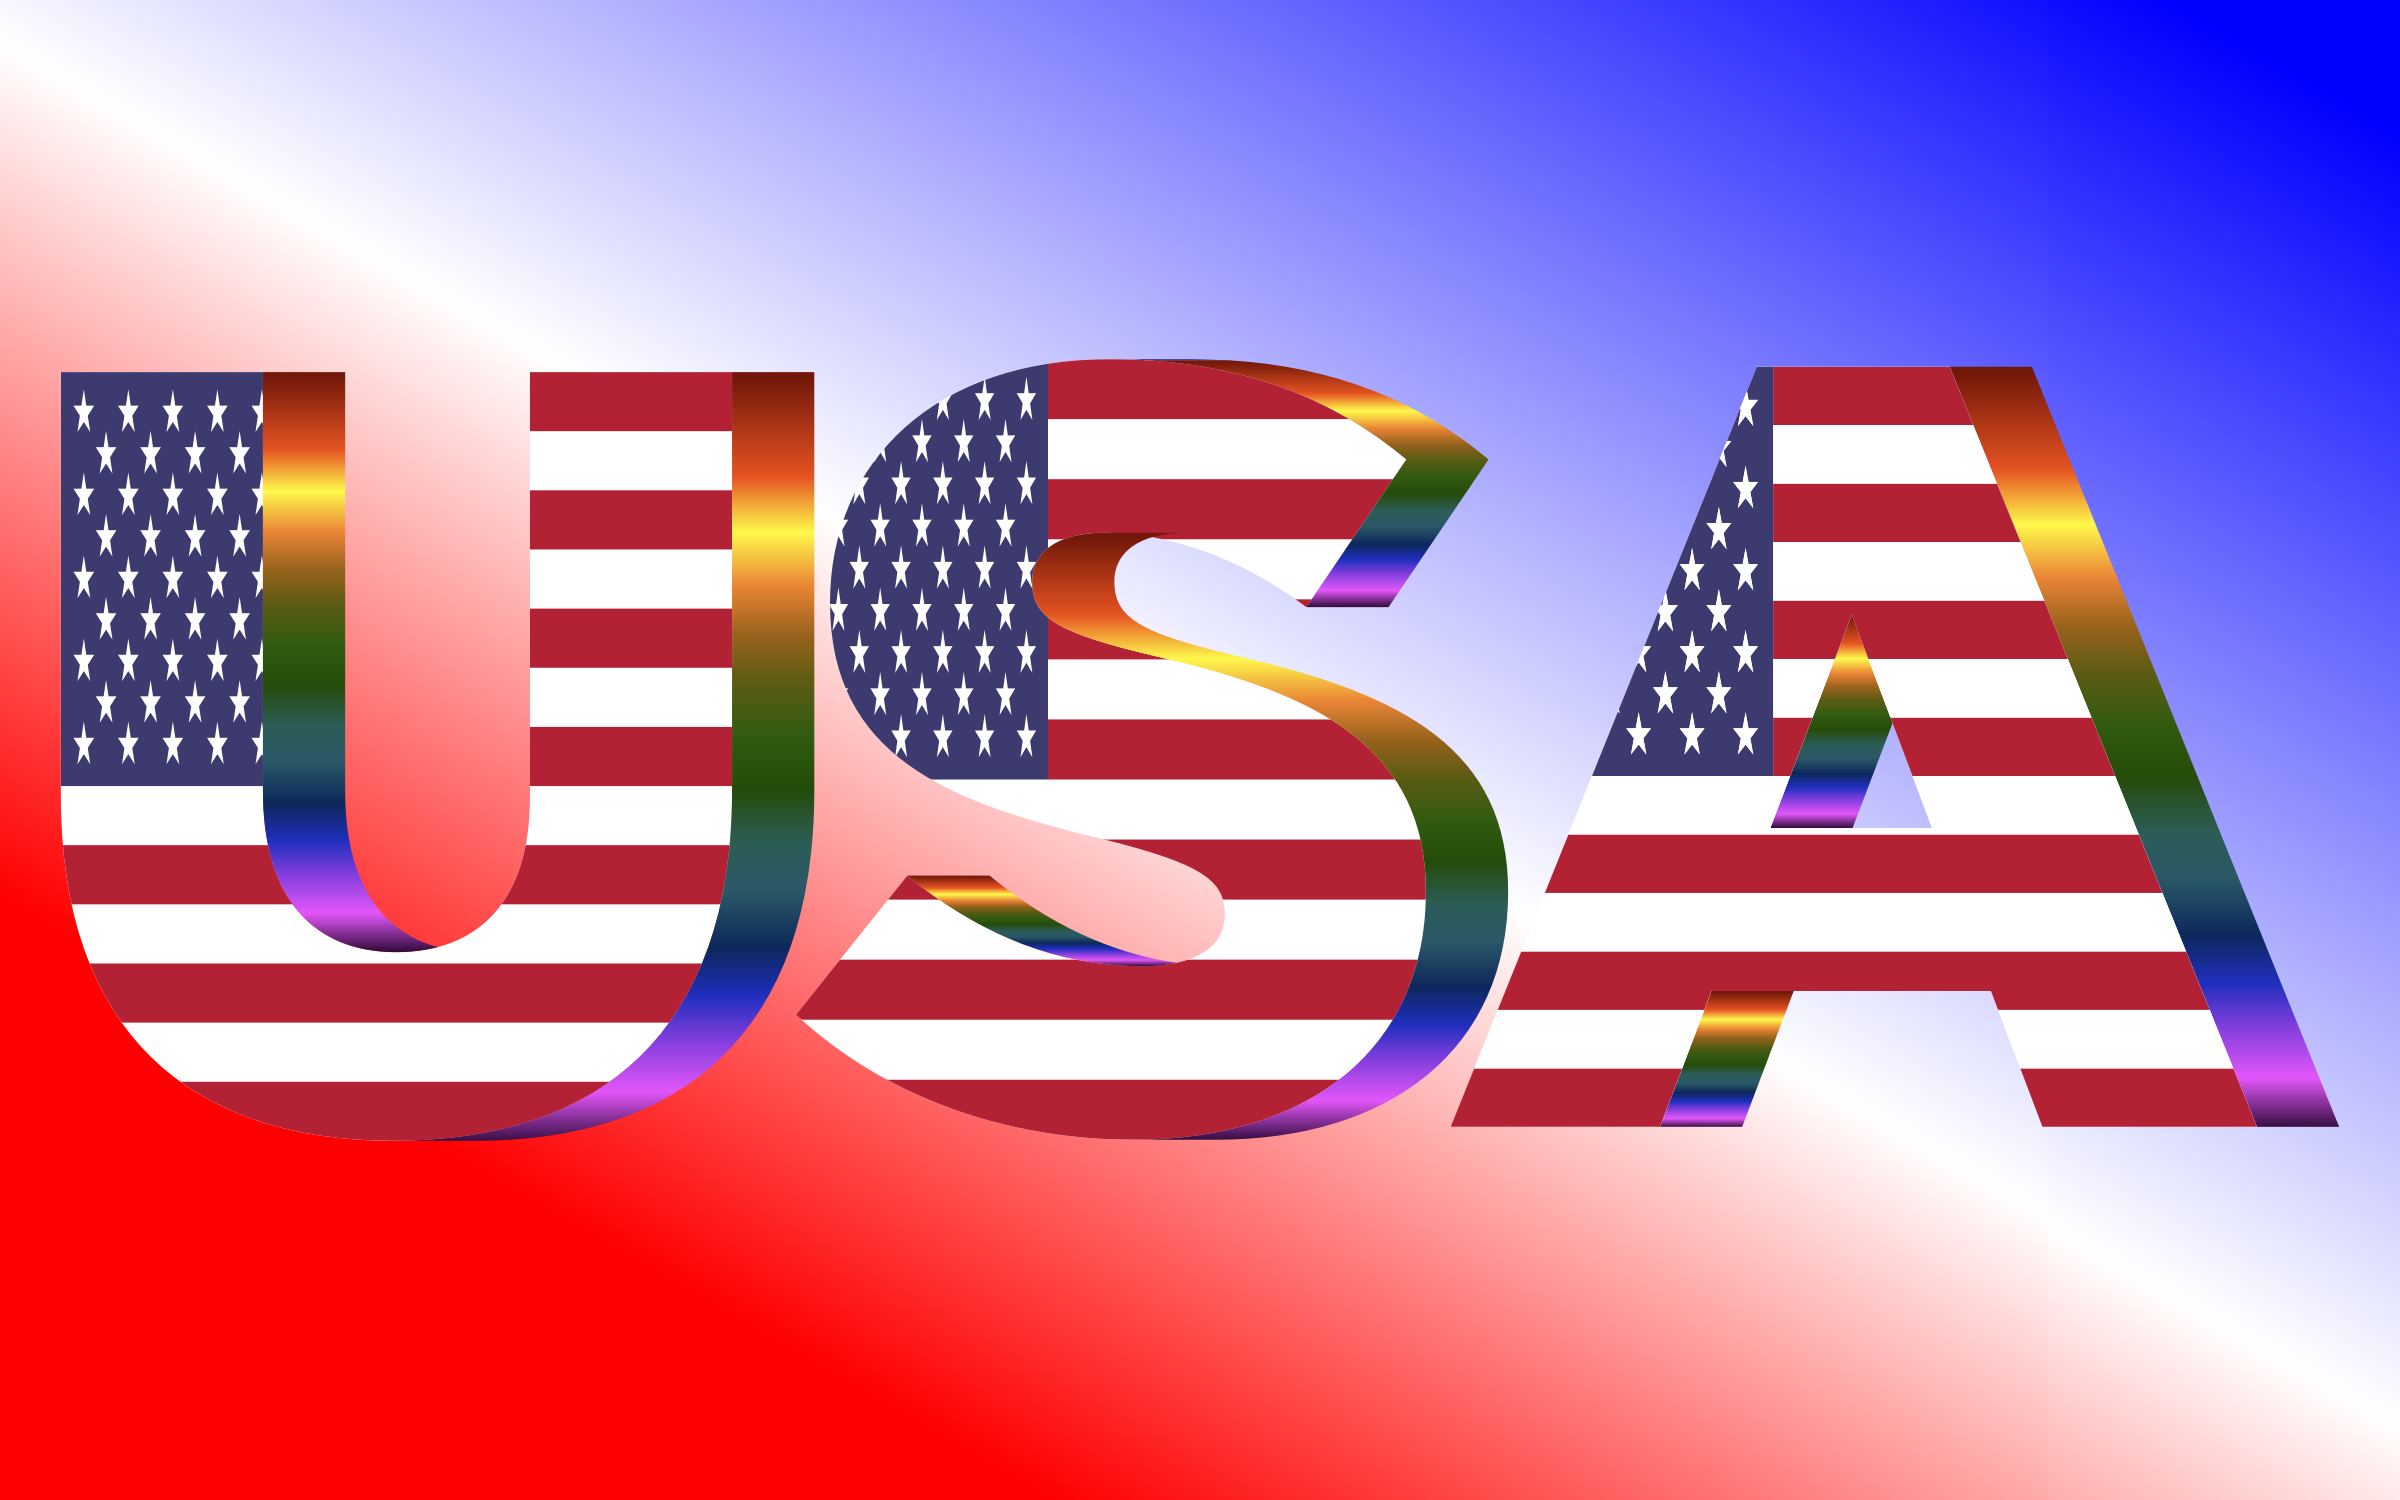 USA Flag Typography Prismatic by GDJ